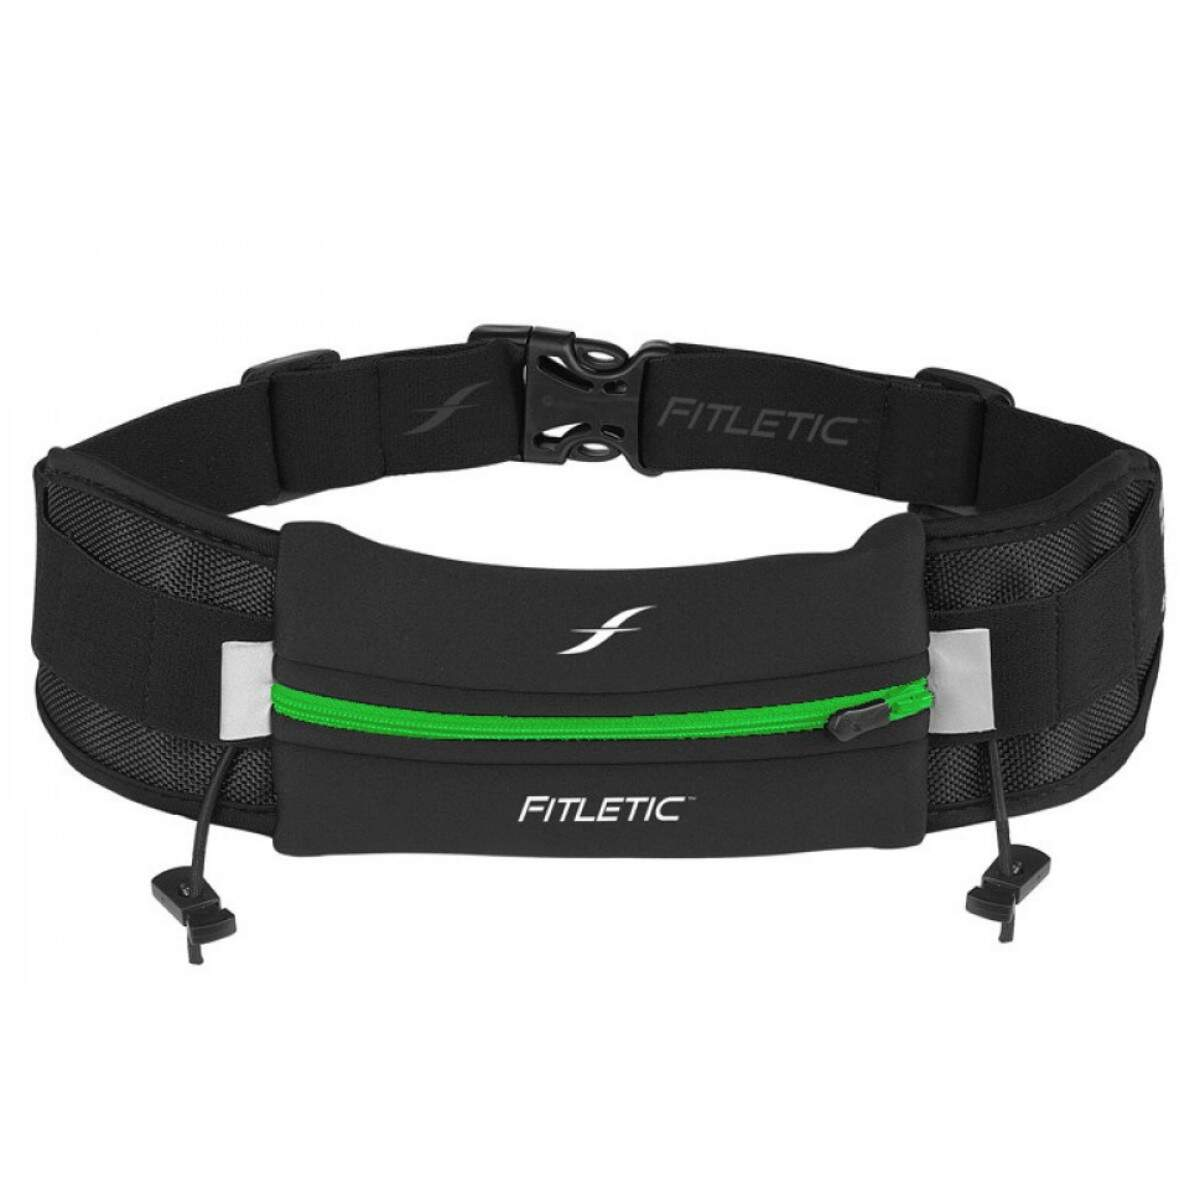 Porta objeto Fitletic Ultimate